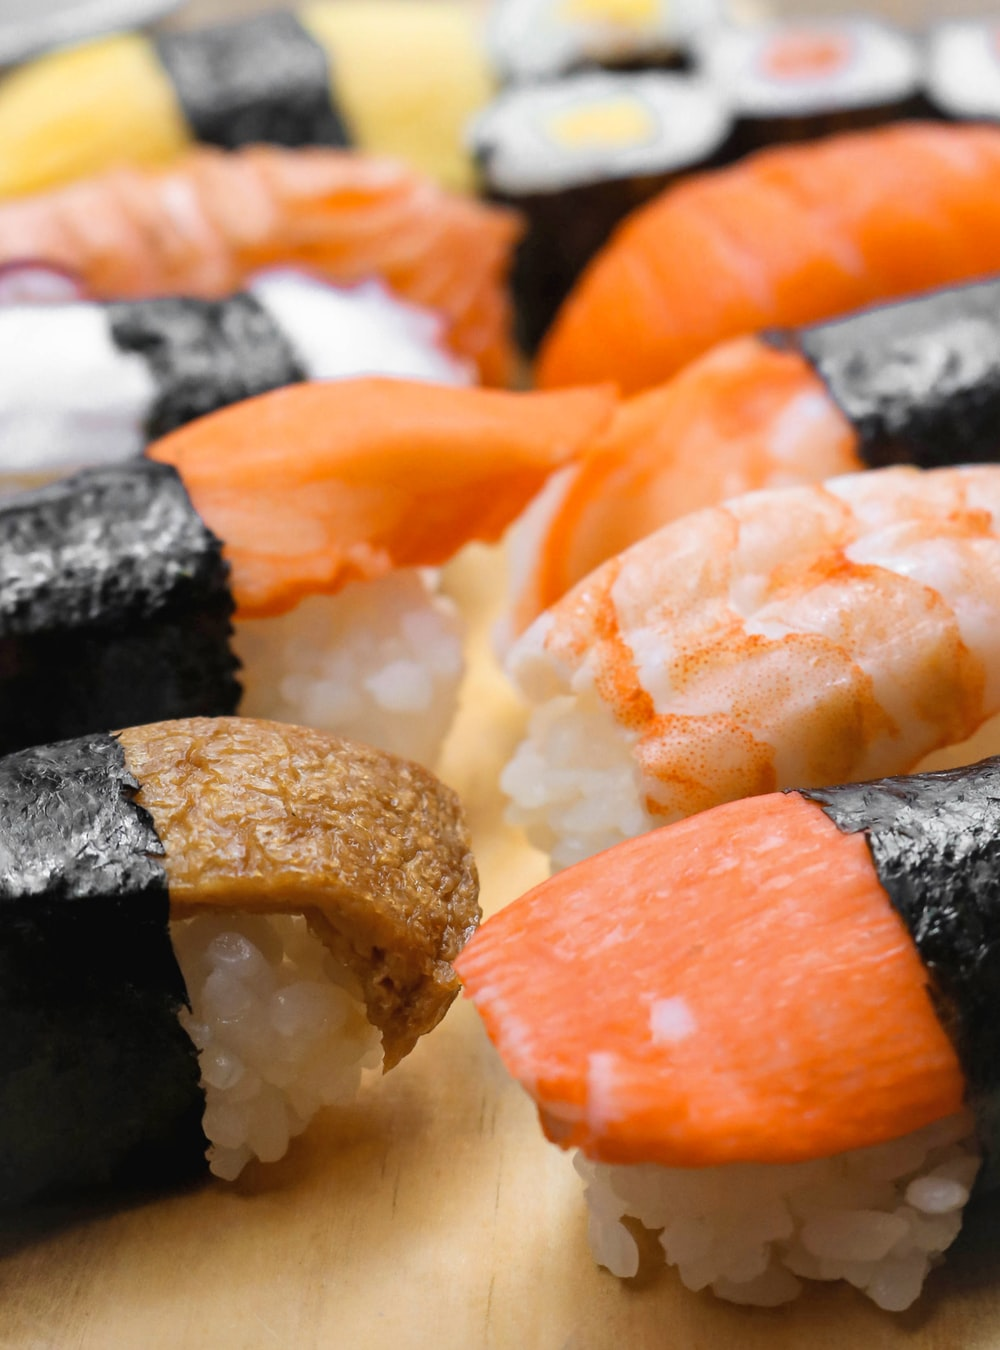 sushi's on brown surface